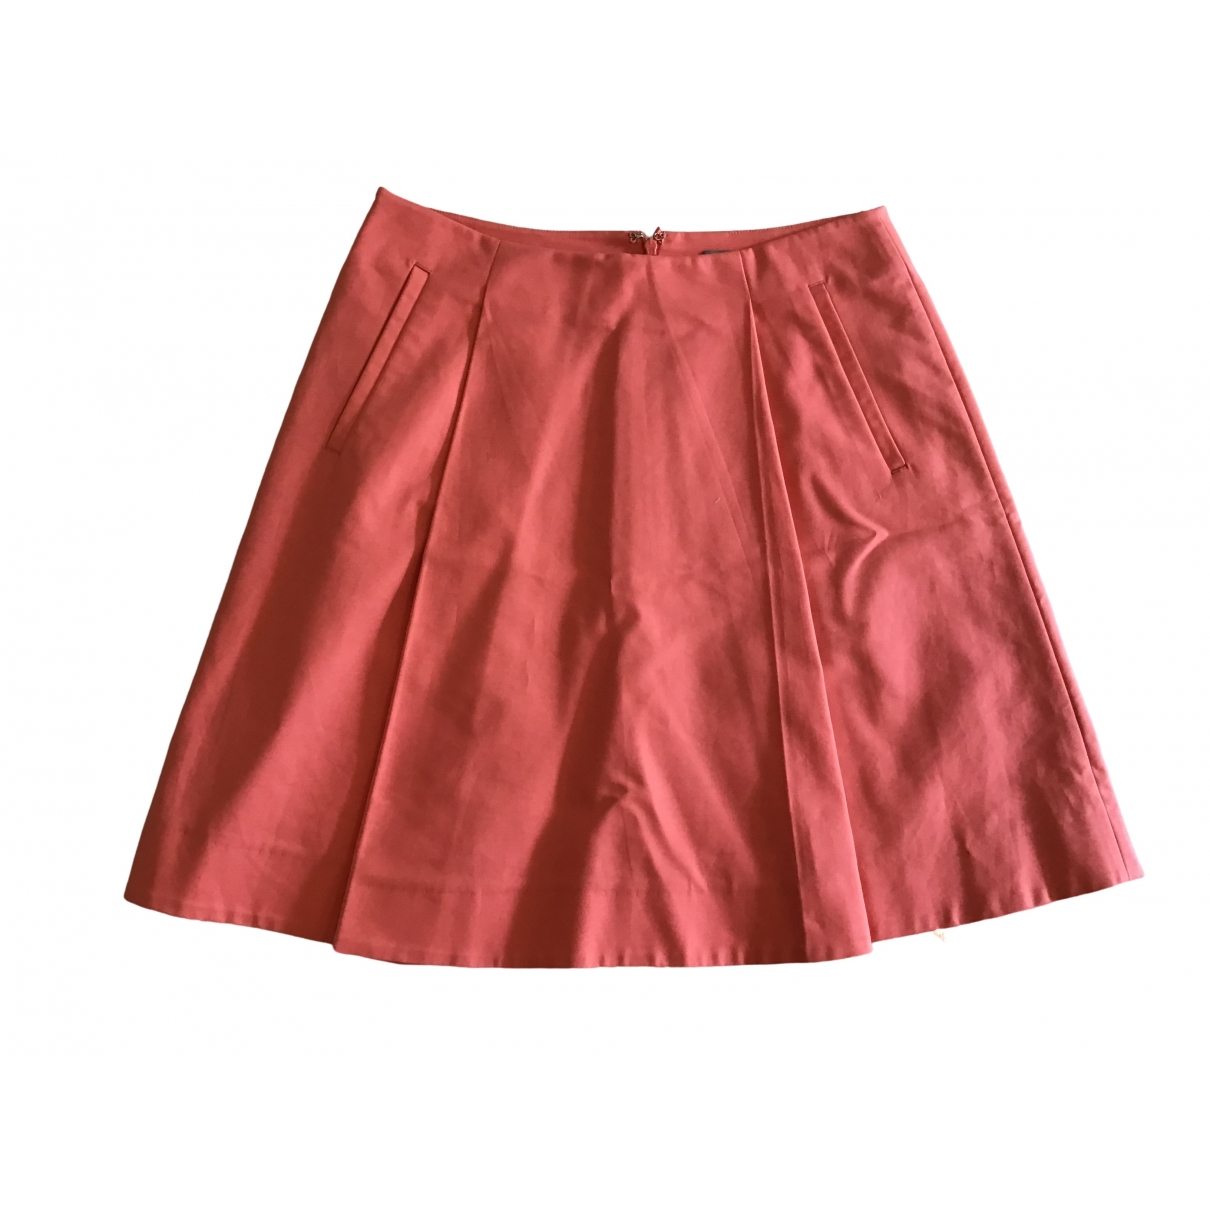 Cos \N Pink Cotton skirt for Women 36 FR